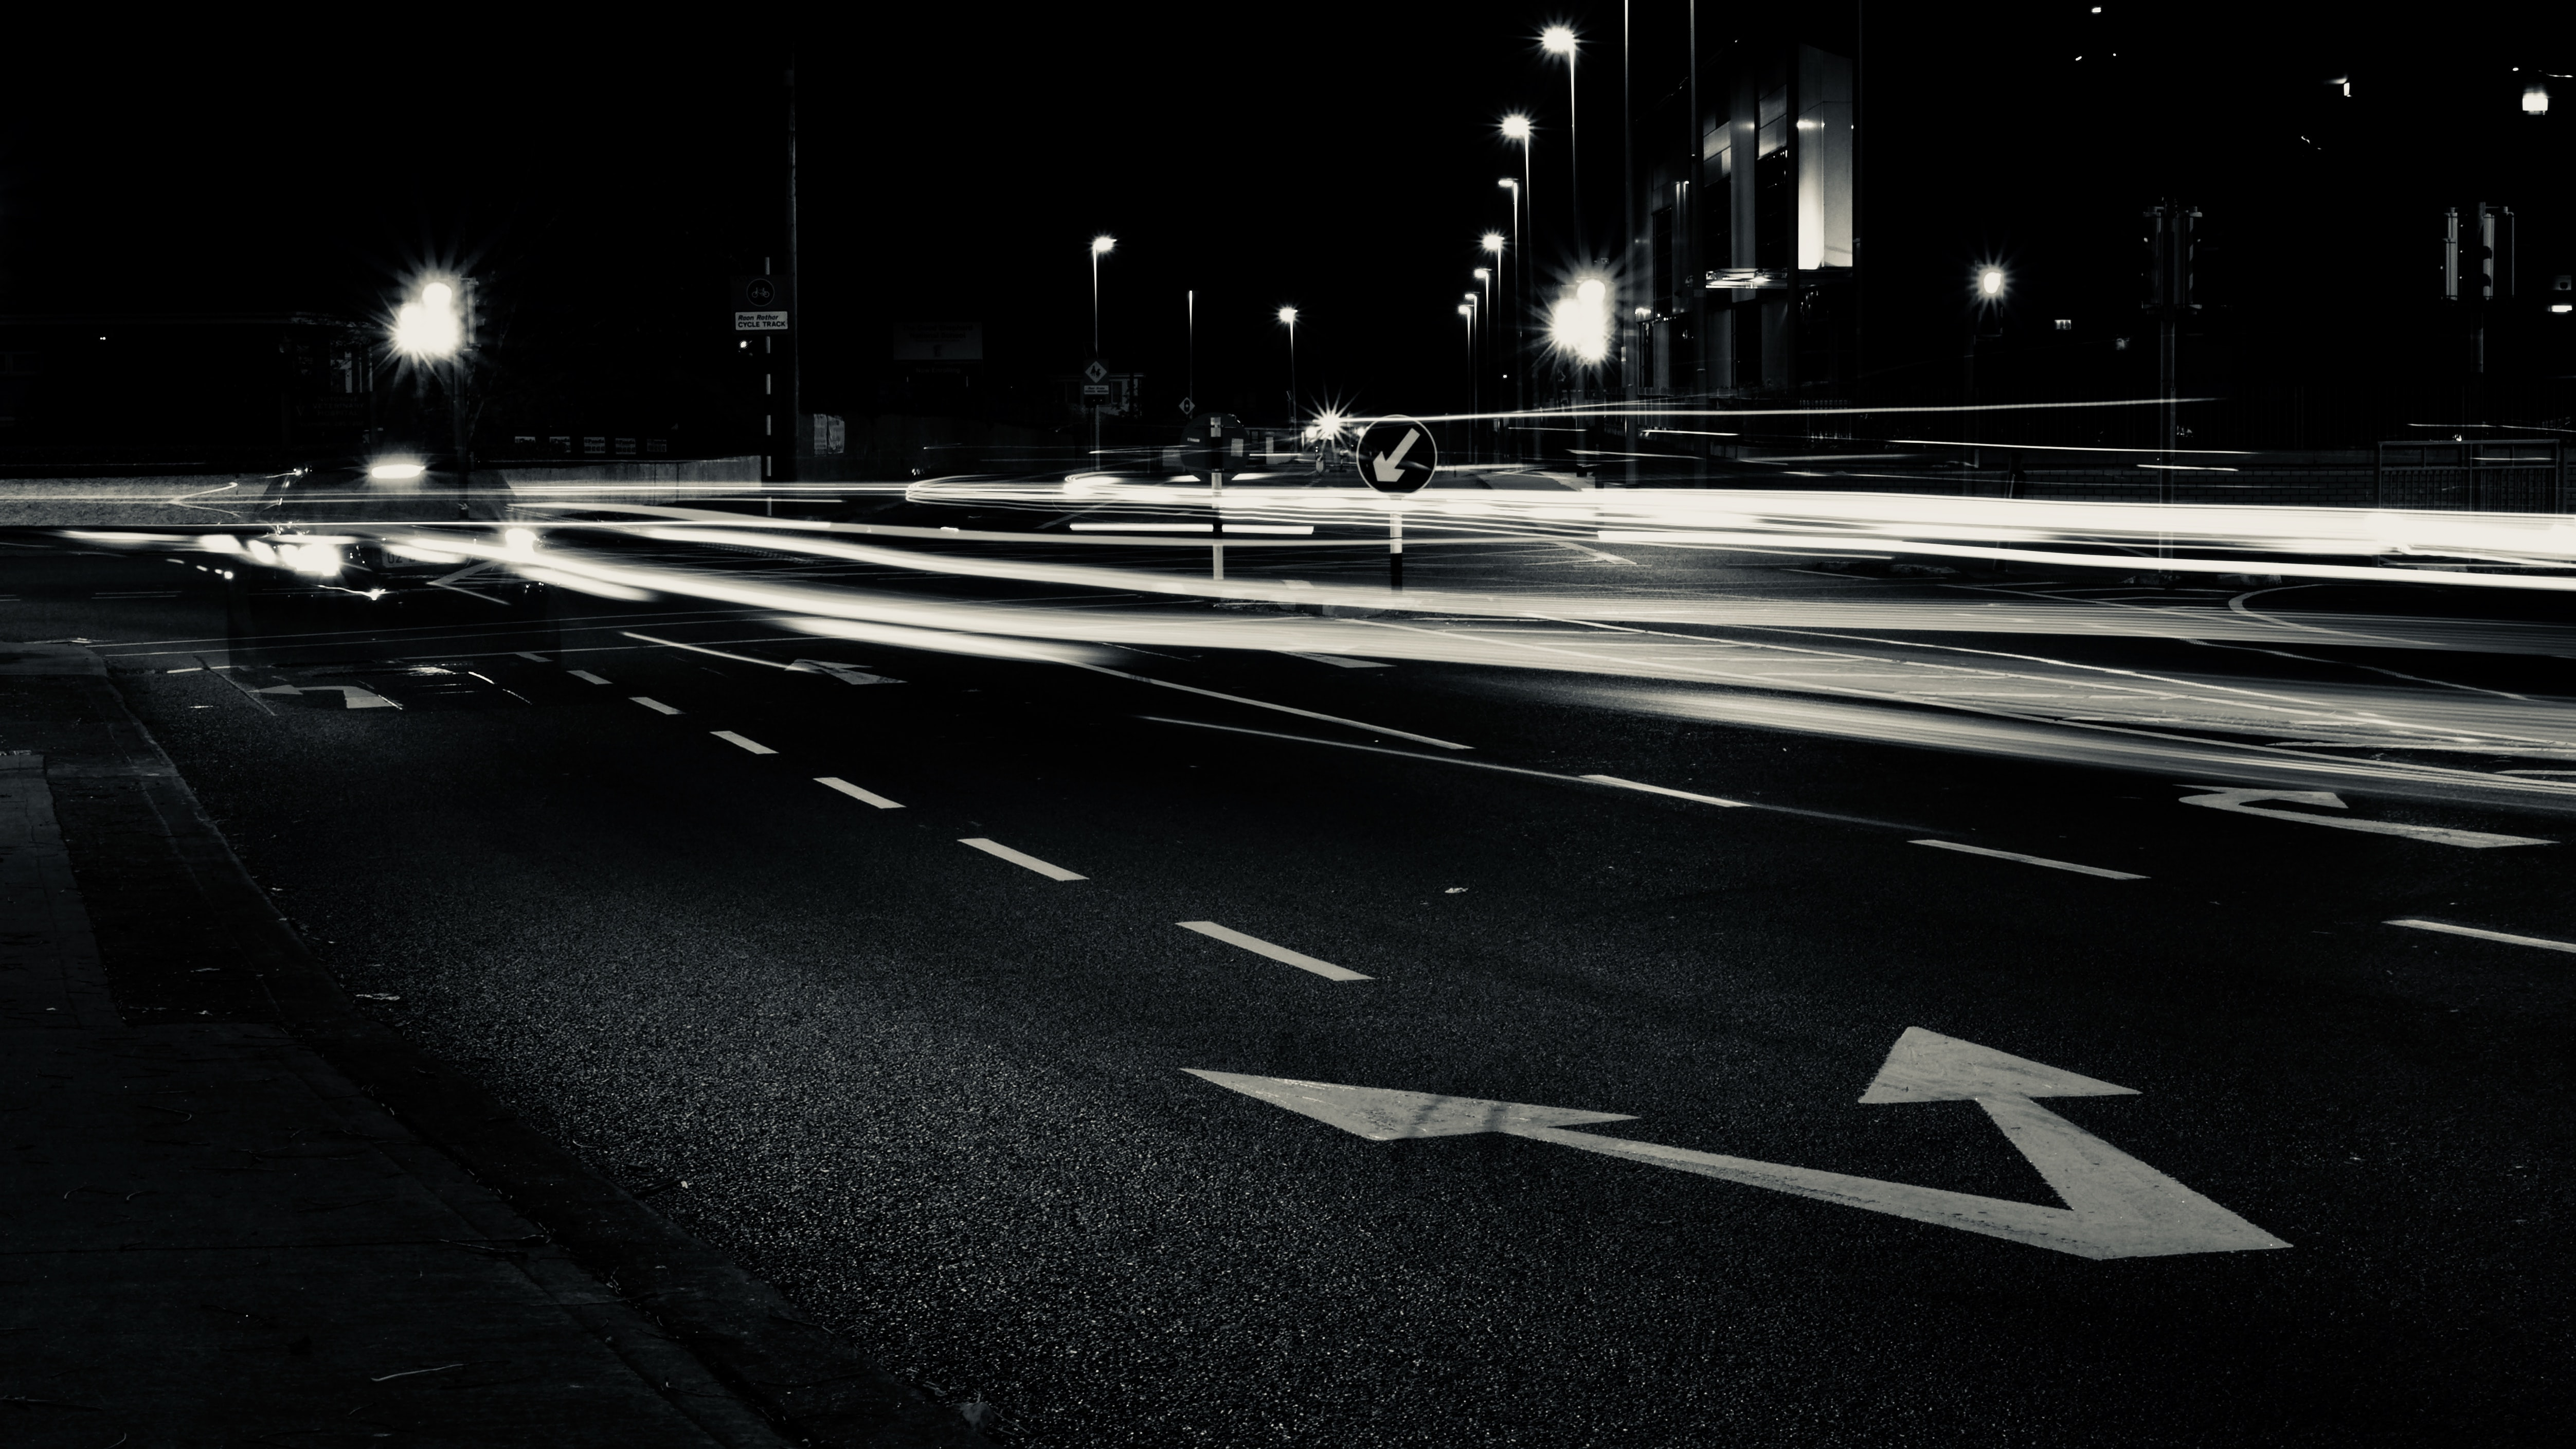 timelapse photography of cars on road